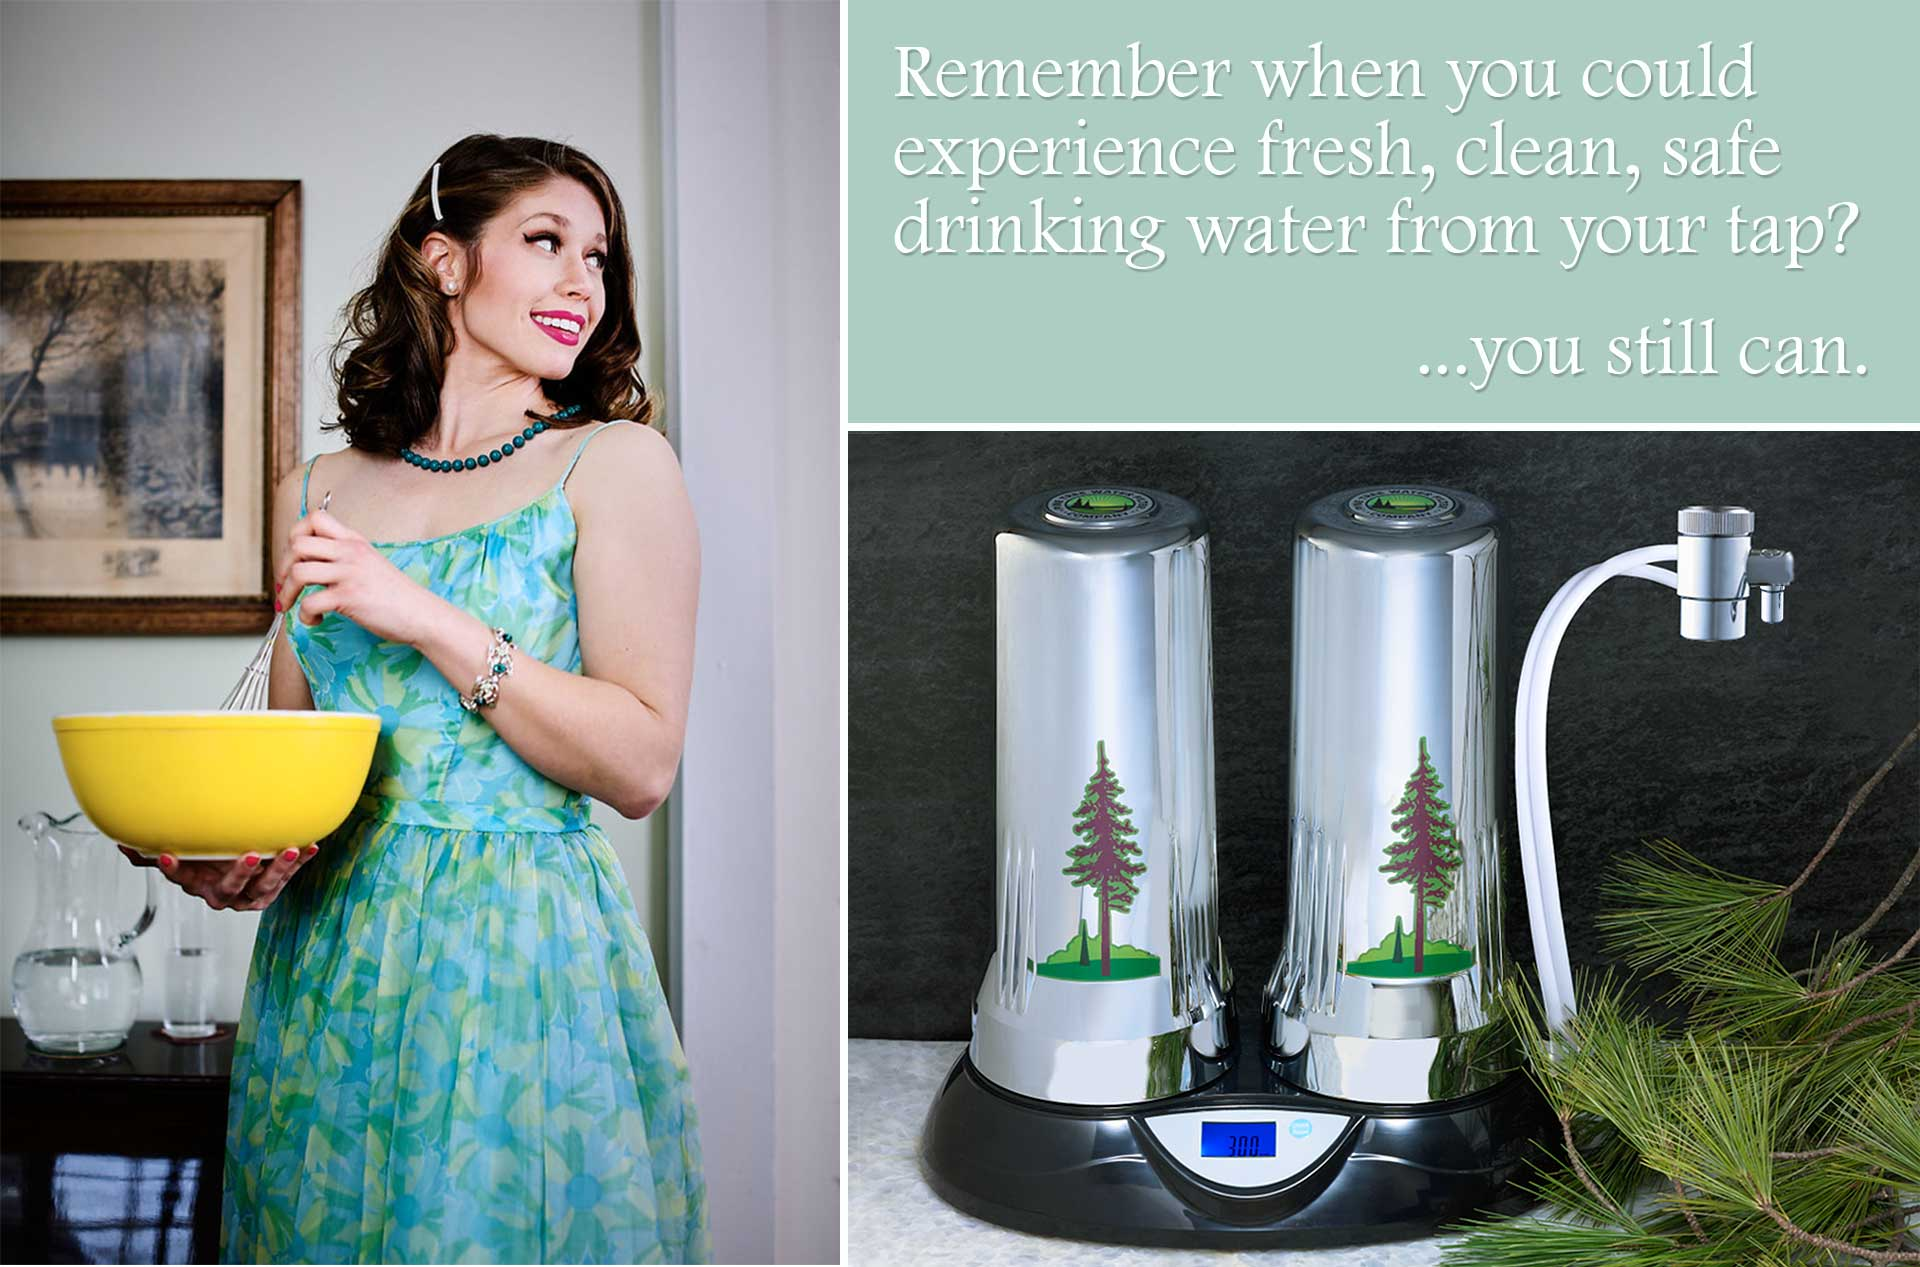 Remember when you could experience fresh, clean, safe drinking water from your tap? ...you still can.